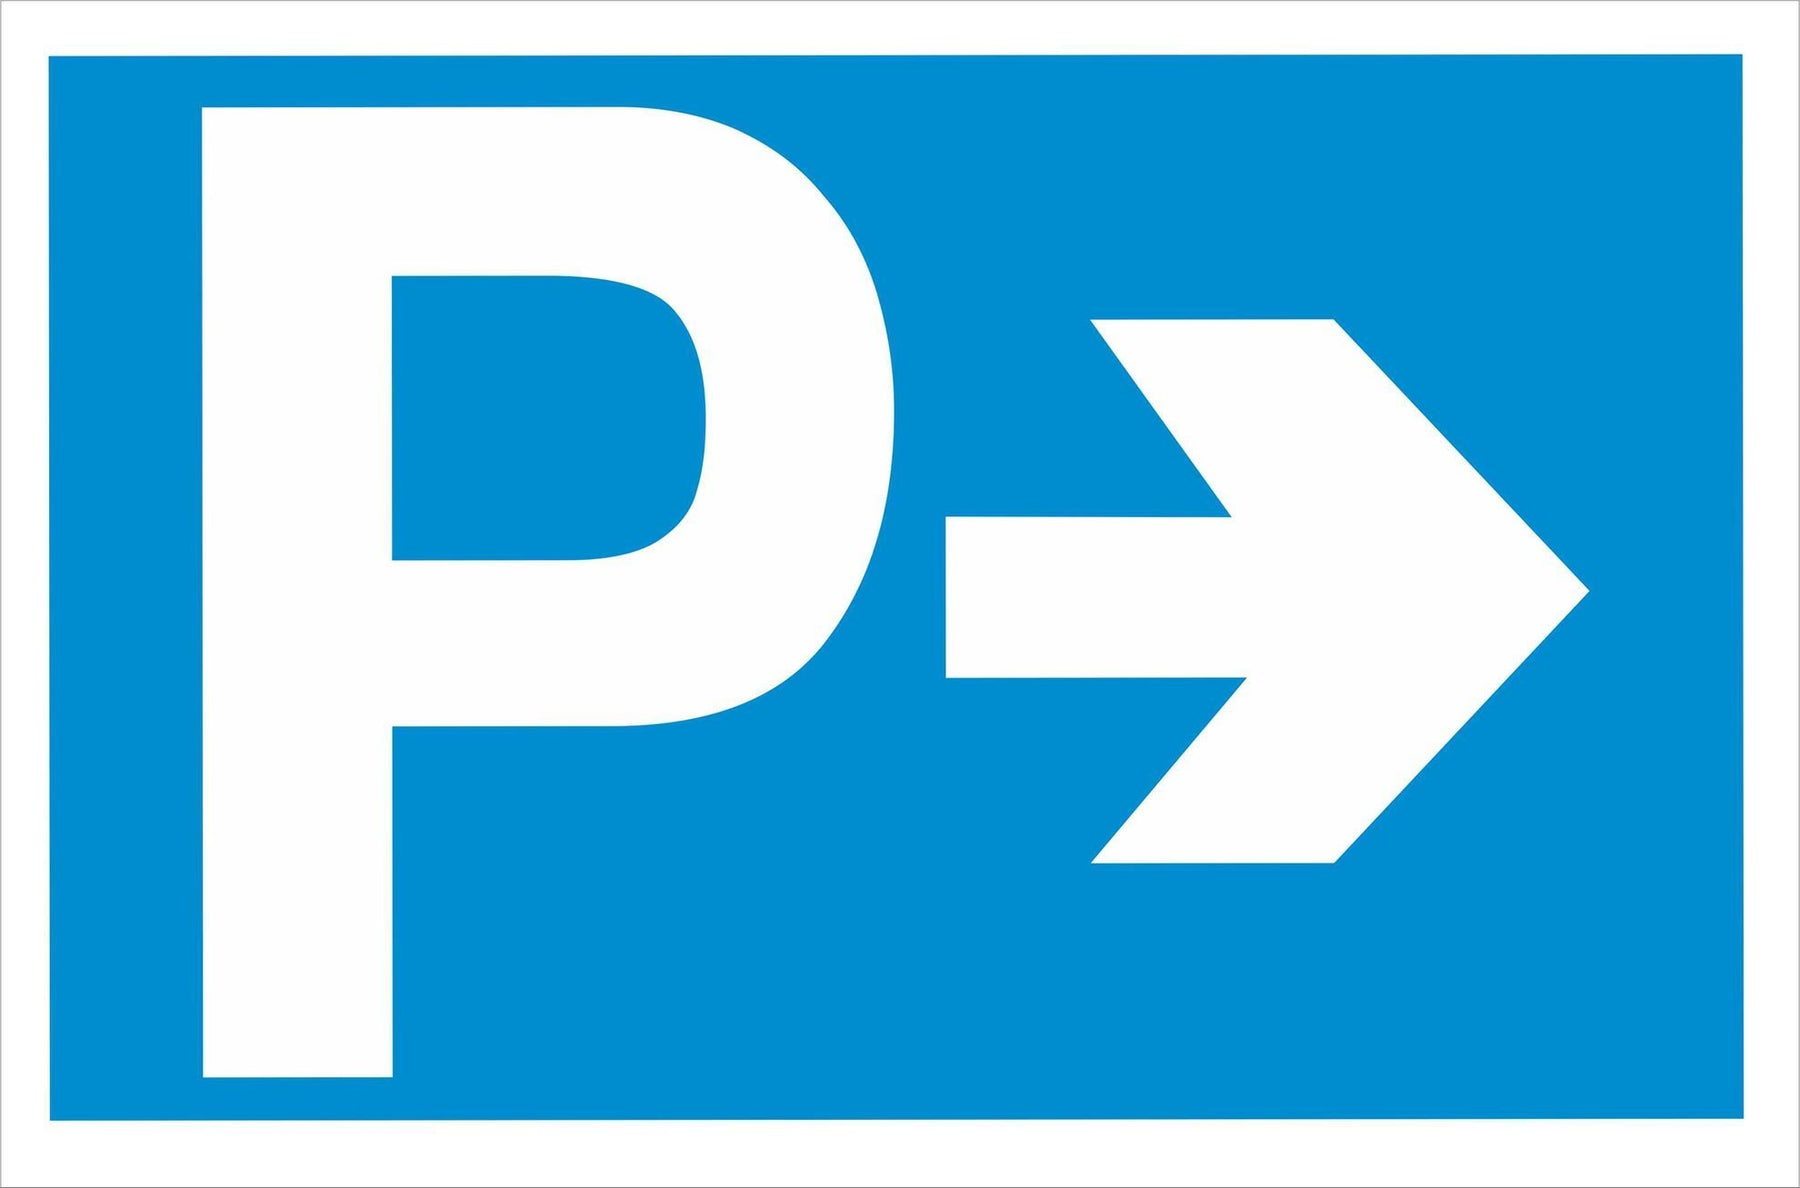 P - Parking - Right Arrow